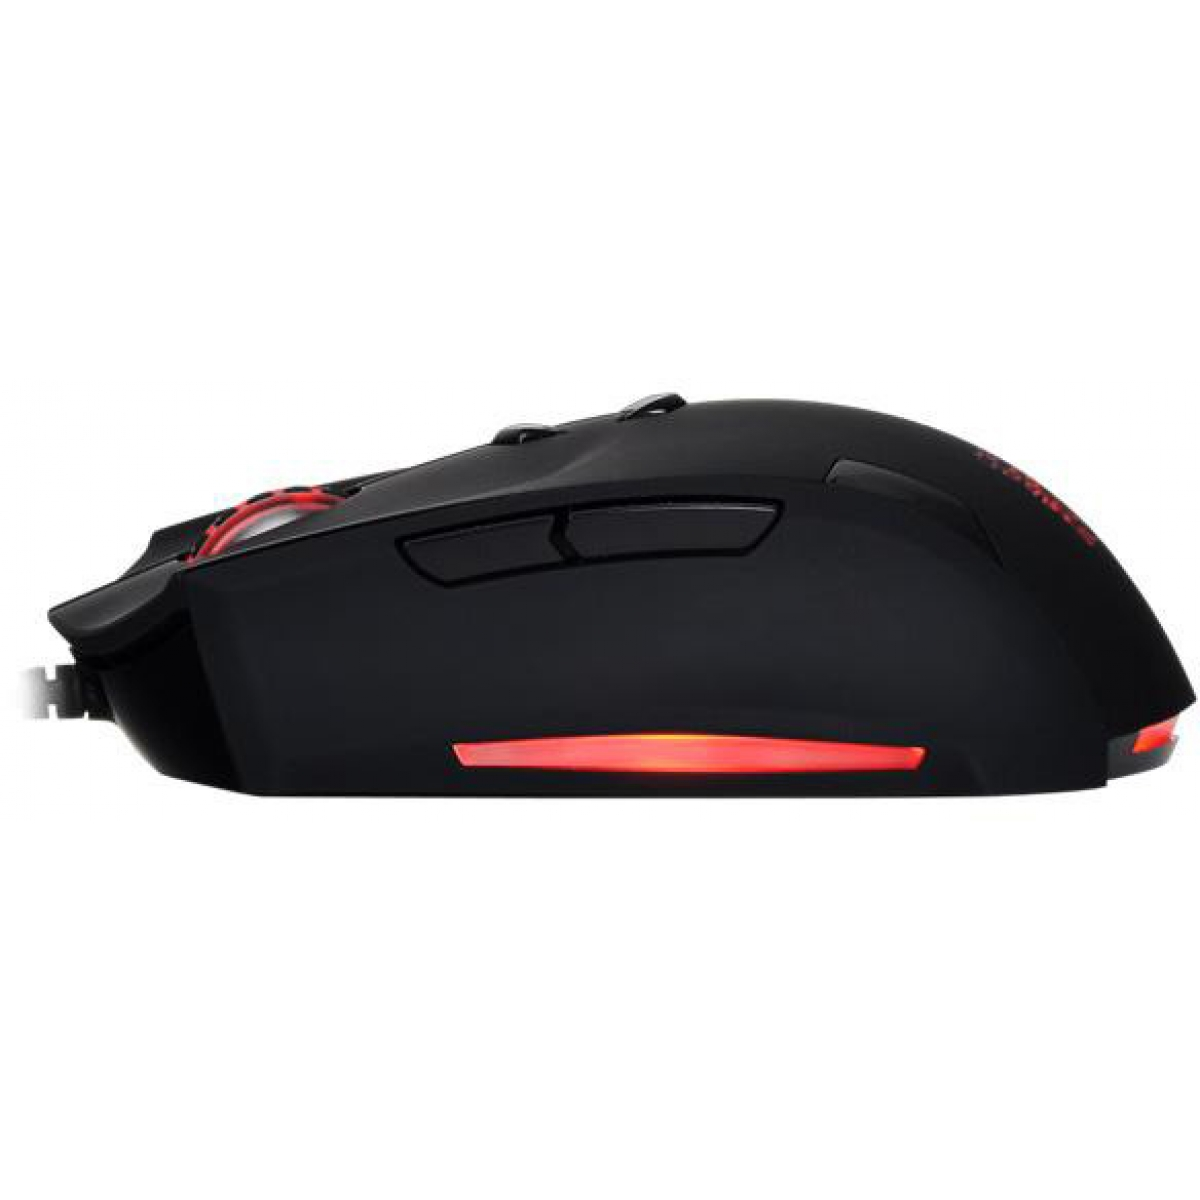 Mouse Thermaltake TT Esports Theron Gaming MO-TRN006DT